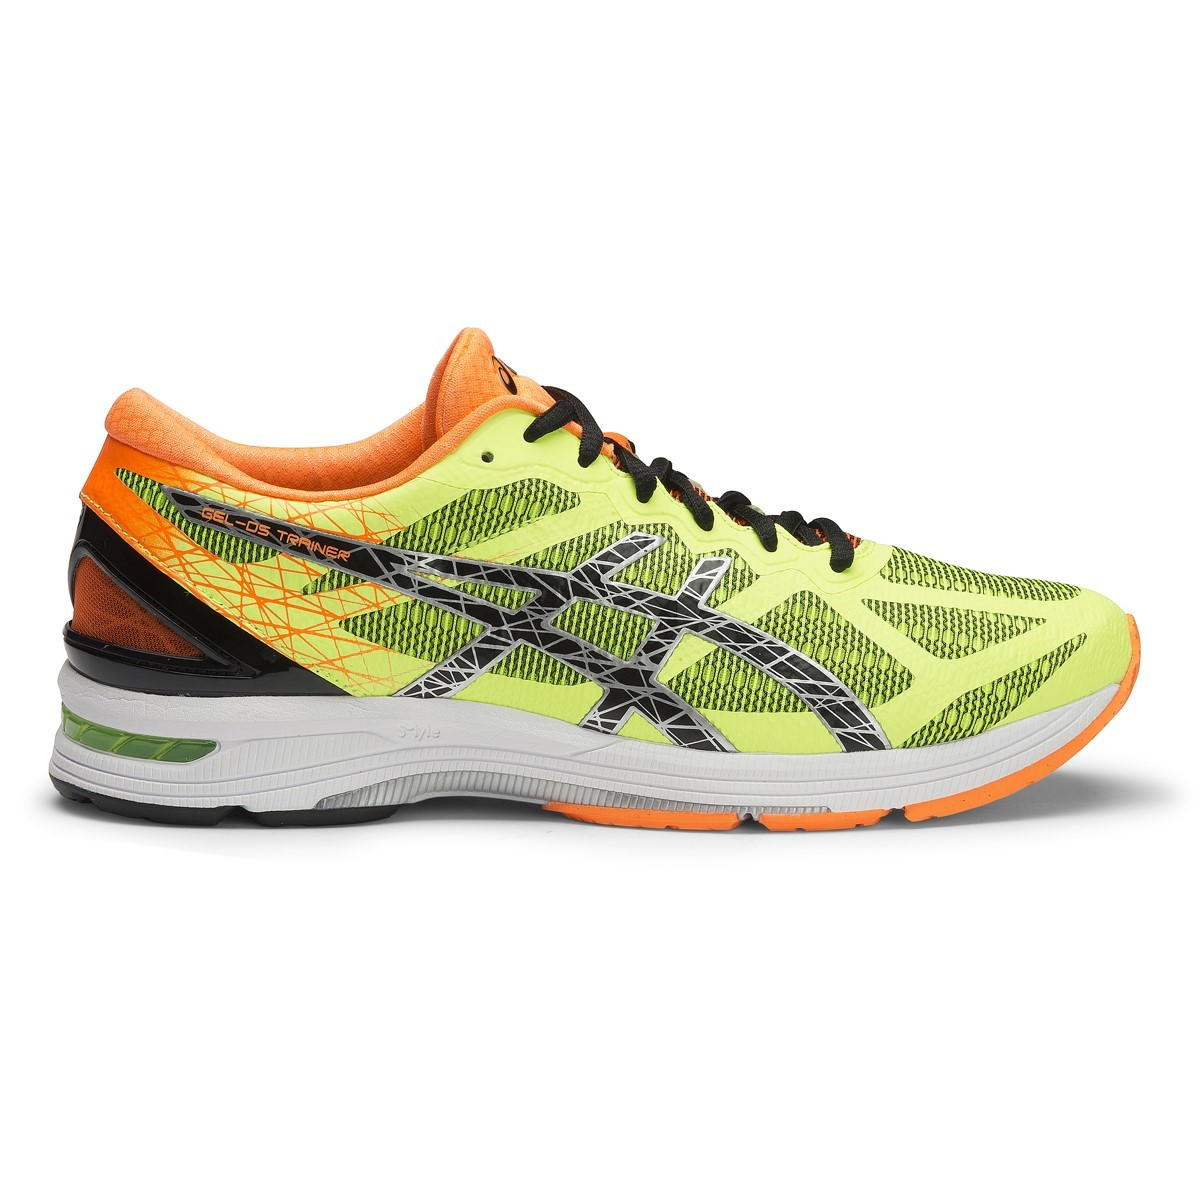 quality design fe3a8 ddc55 Asics Gel DS Trainer 21 - Mens Running Shoes